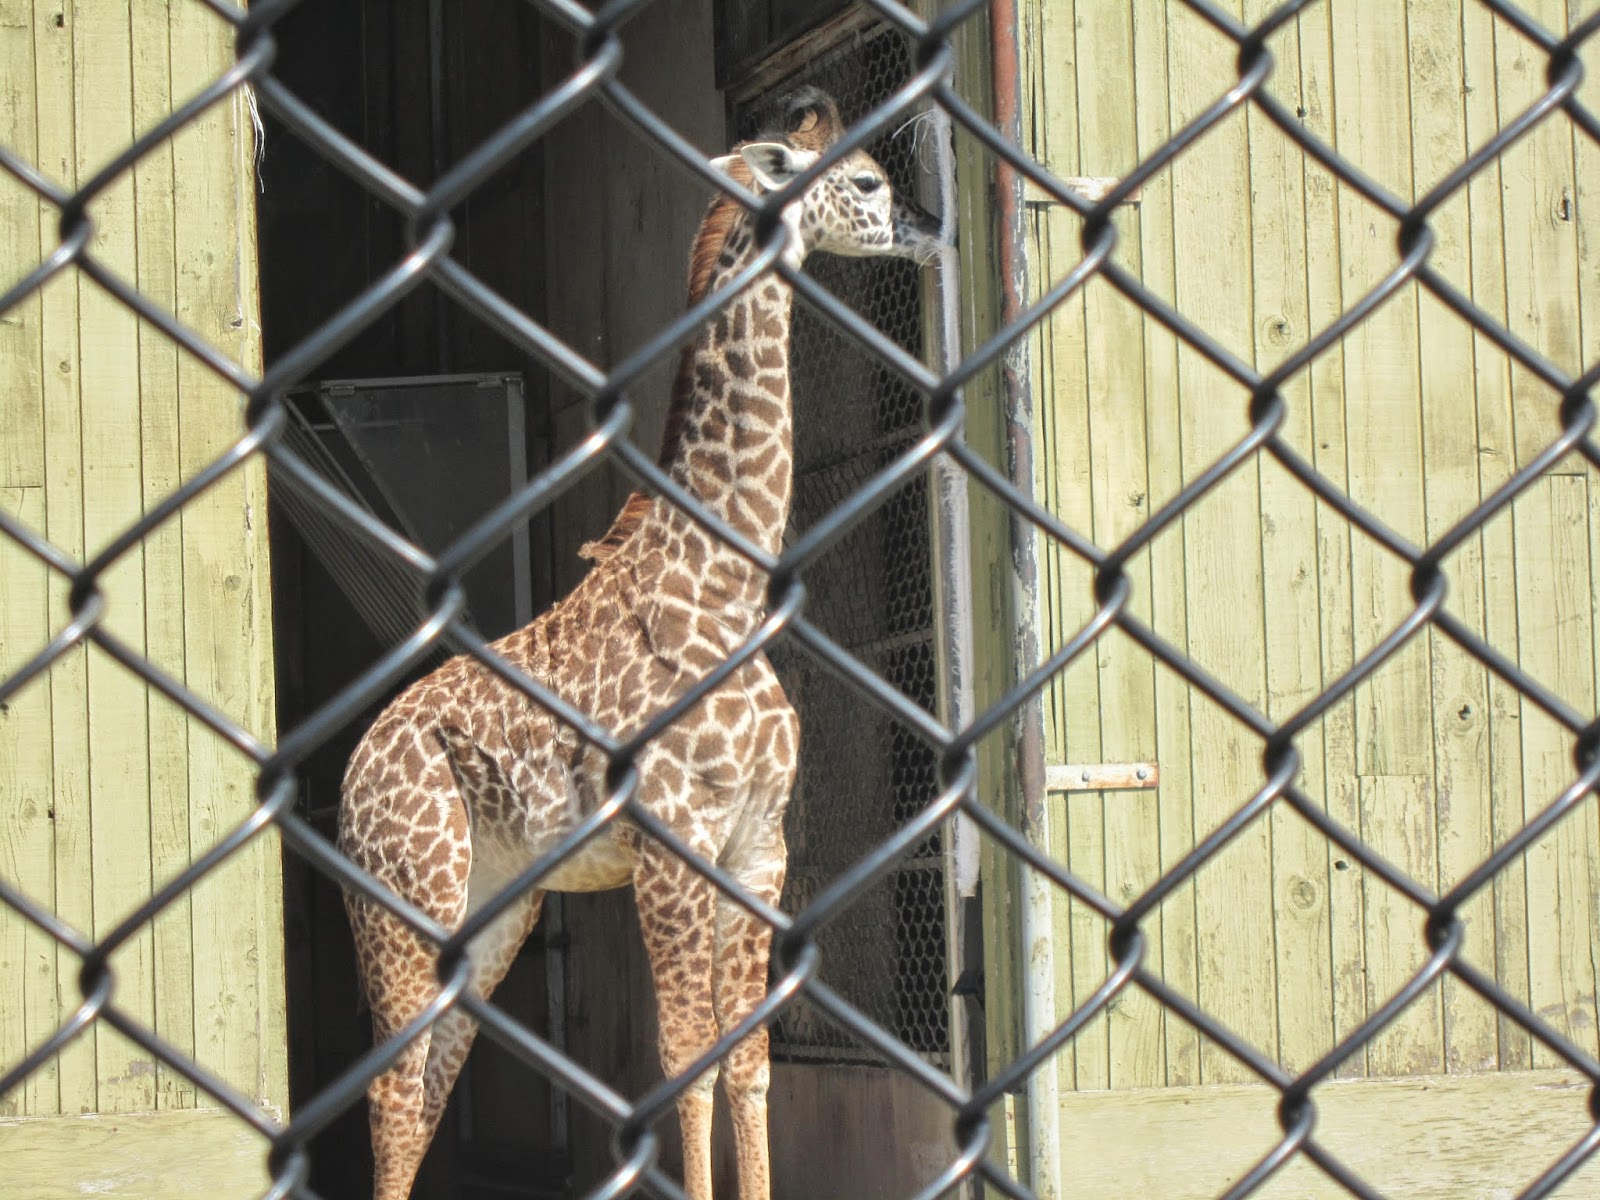 baby giraffe, zoo, Toronto Zoo, animals, animal photography